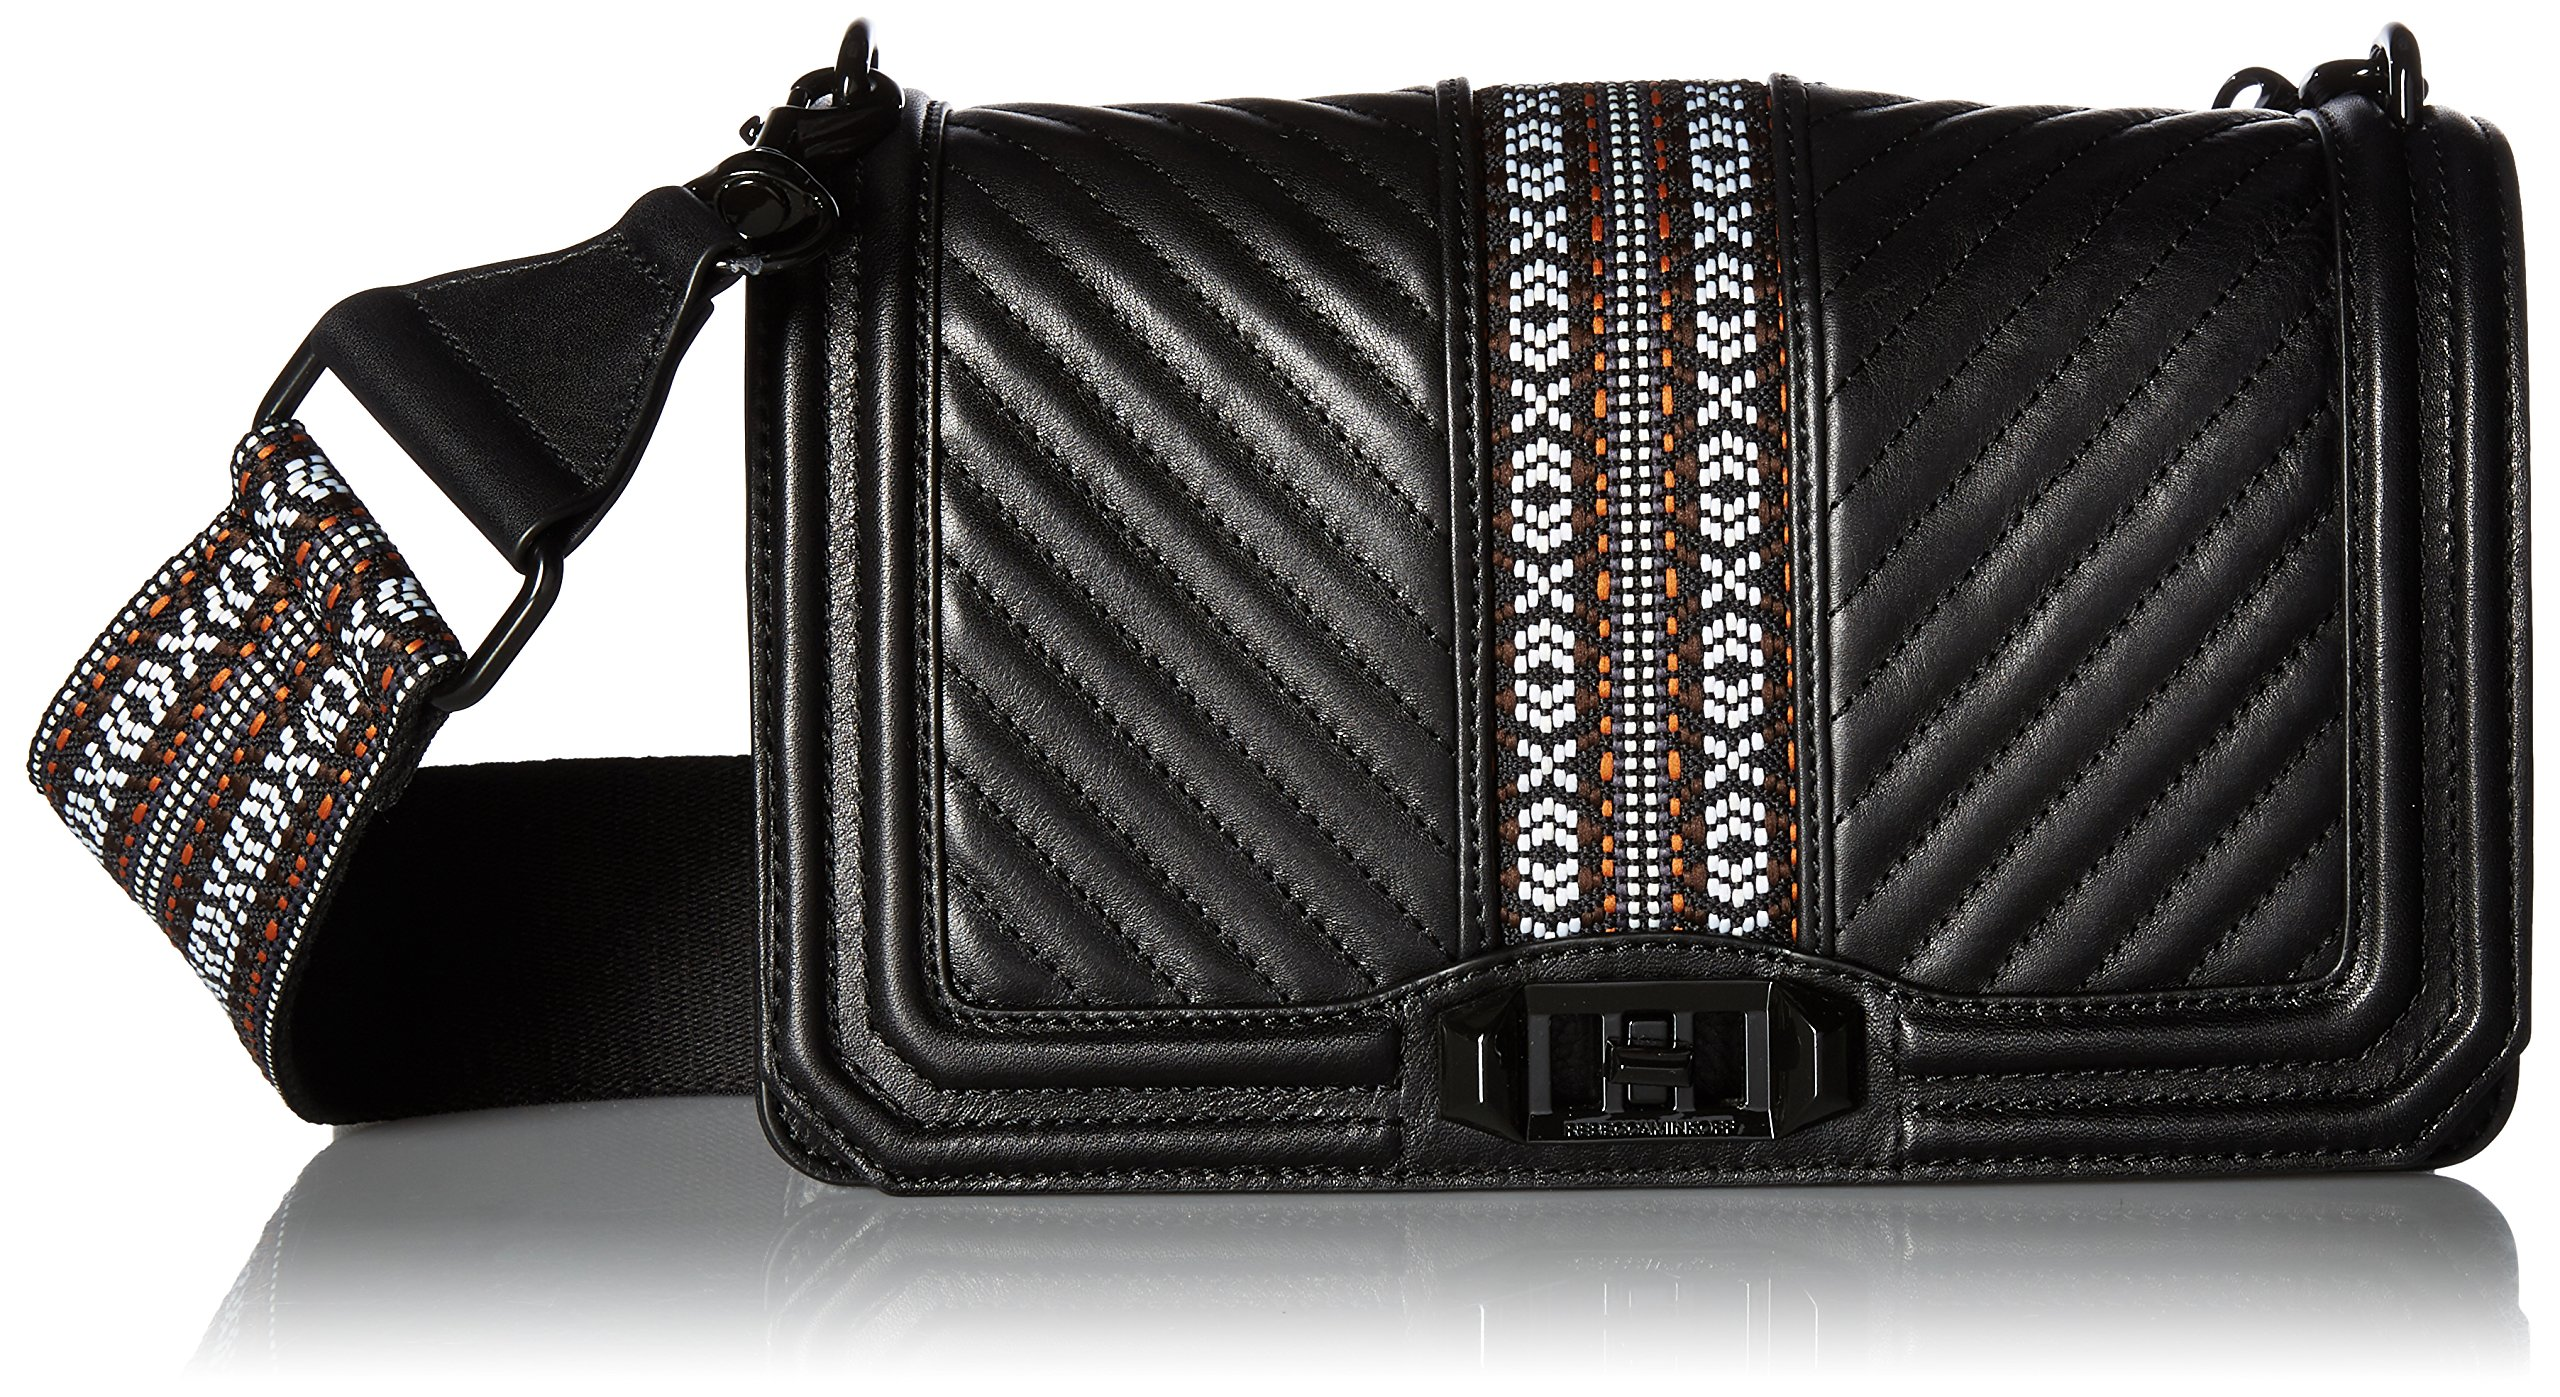 Rebecca Minkoff Jacquard Love Crossbody with Guitar Strap, Black